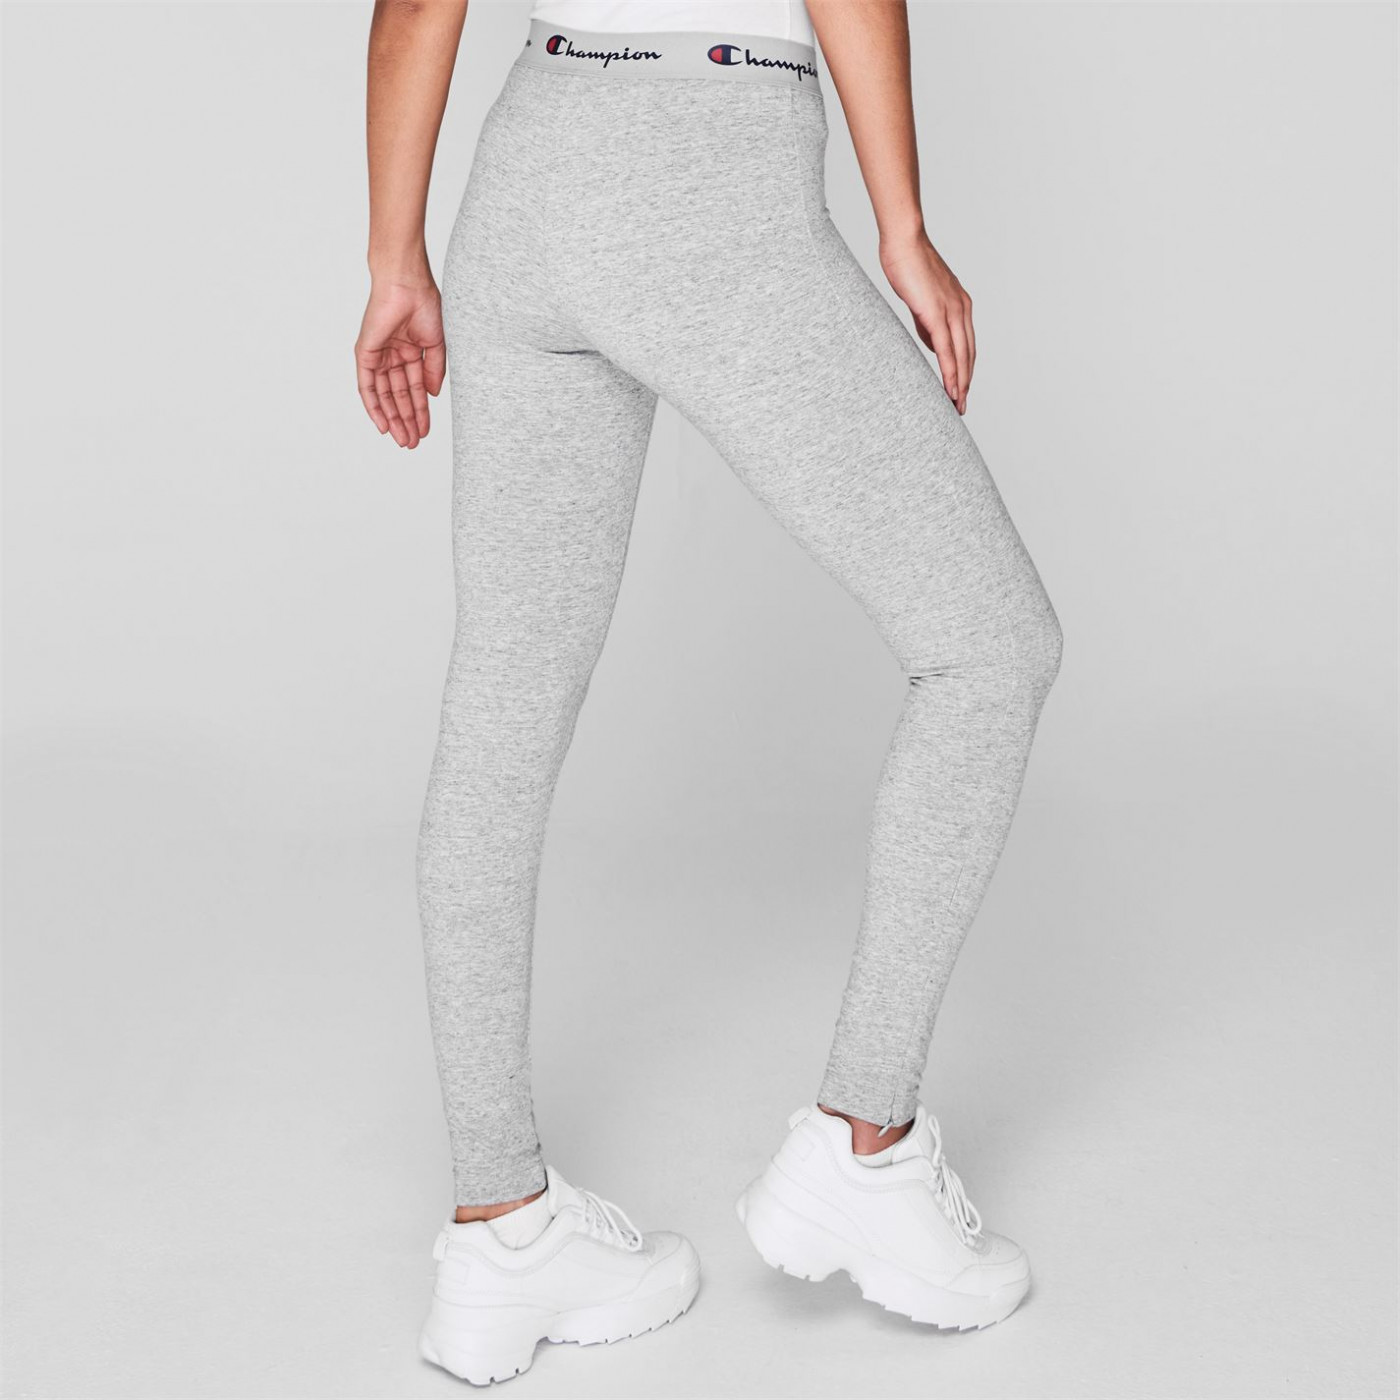 Champion Ank Leggings